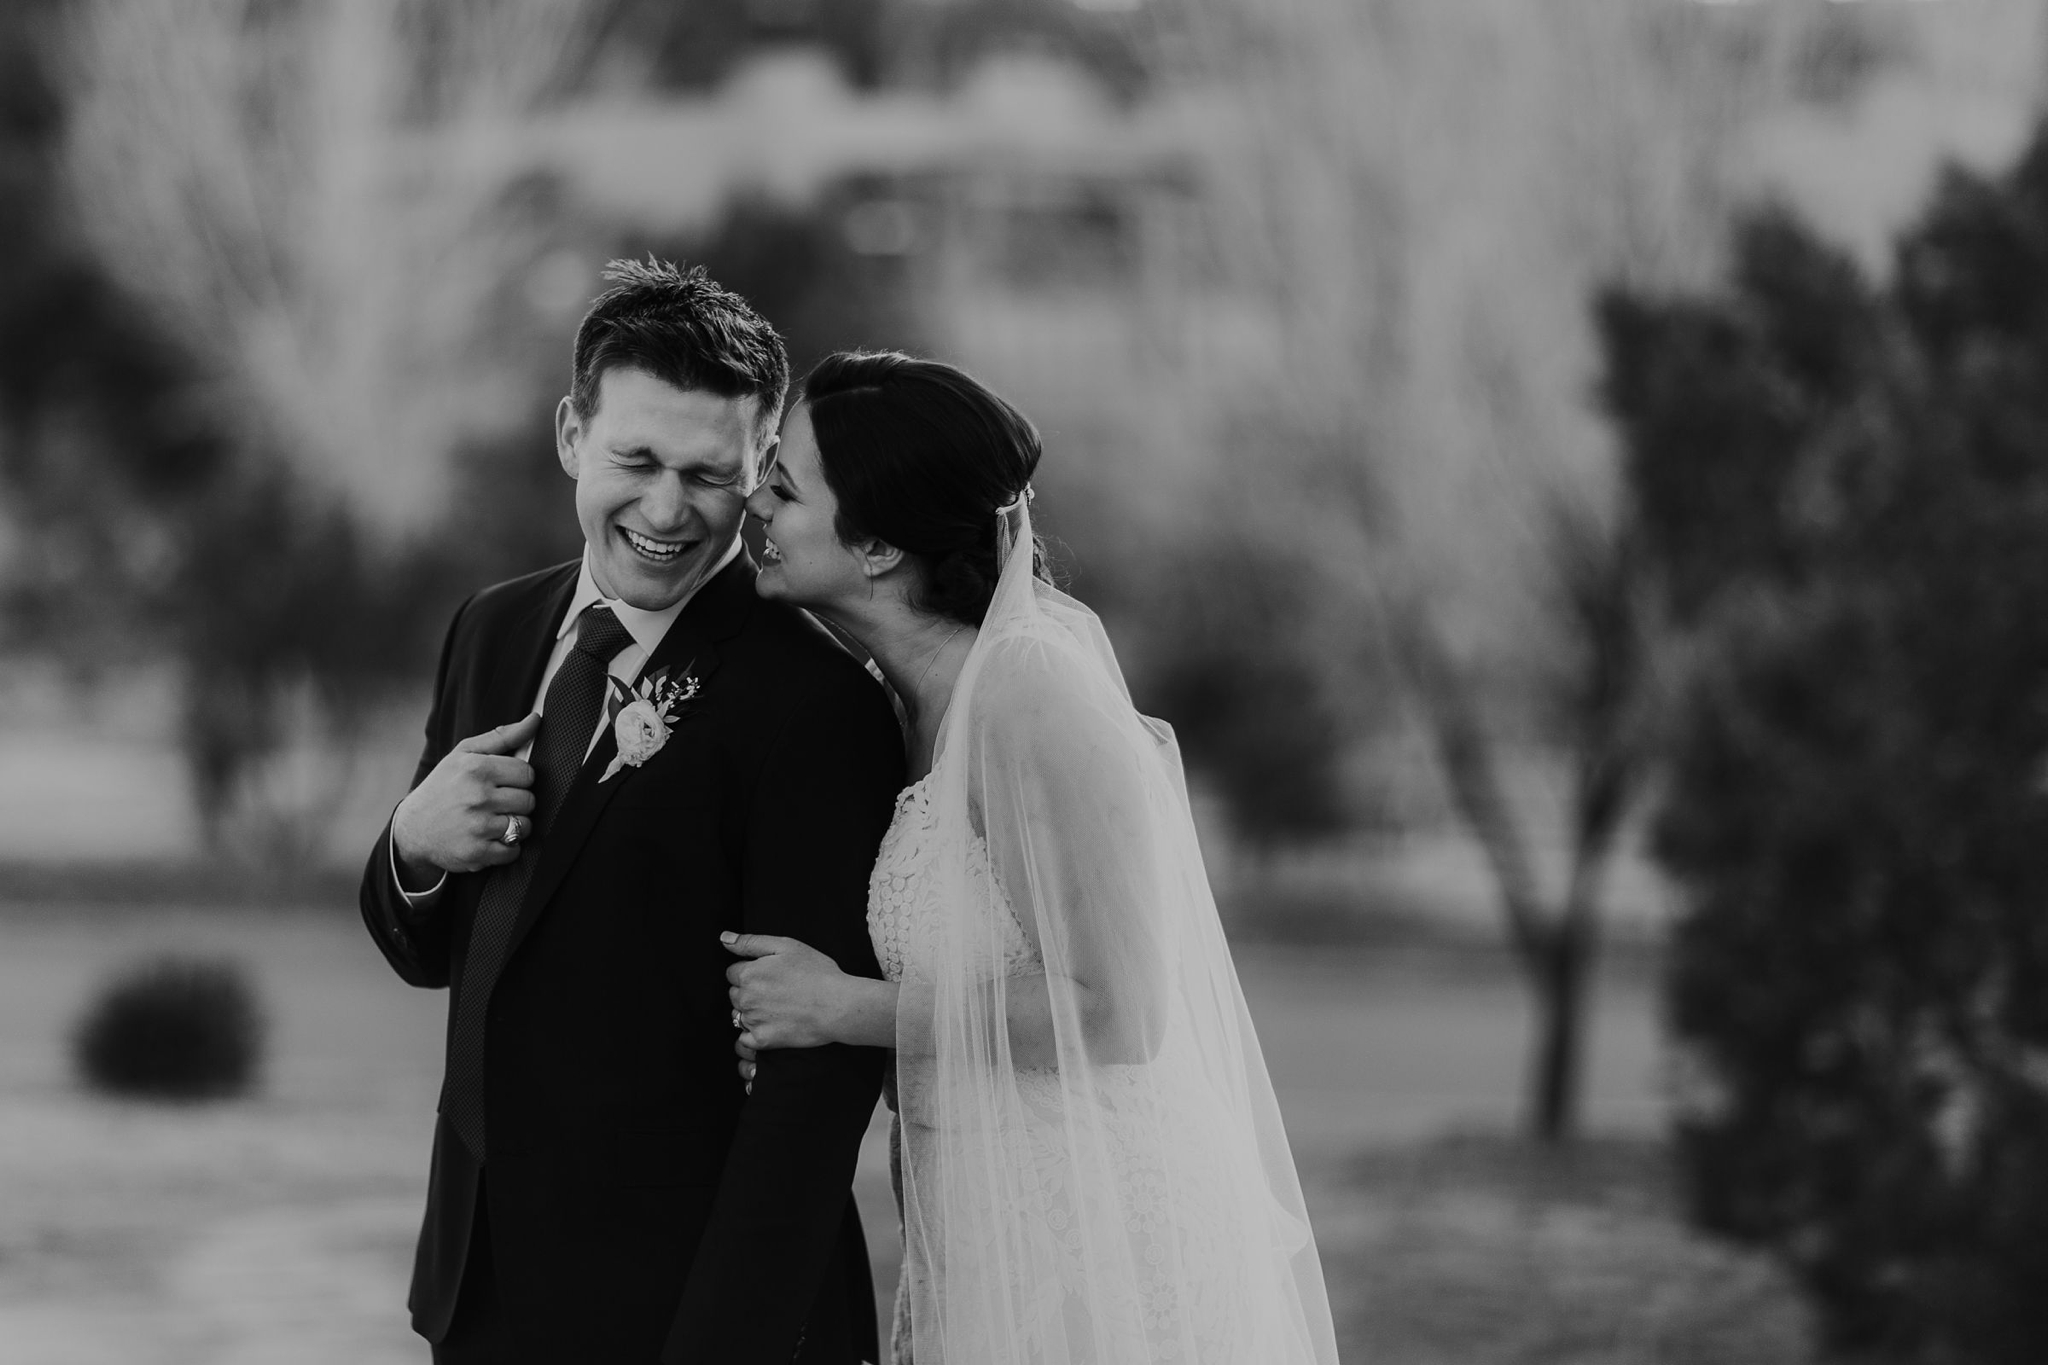 Alicia+lucia+photography+-+albuquerque+wedding+photographer+-+santa+fe+wedding+photography+-+new+mexico+wedding+photographer+-+new+mexico+wedding+-+albuquerque+wedding+-+santa+fe+wedding+-+wedding+romantics_0004.jpg